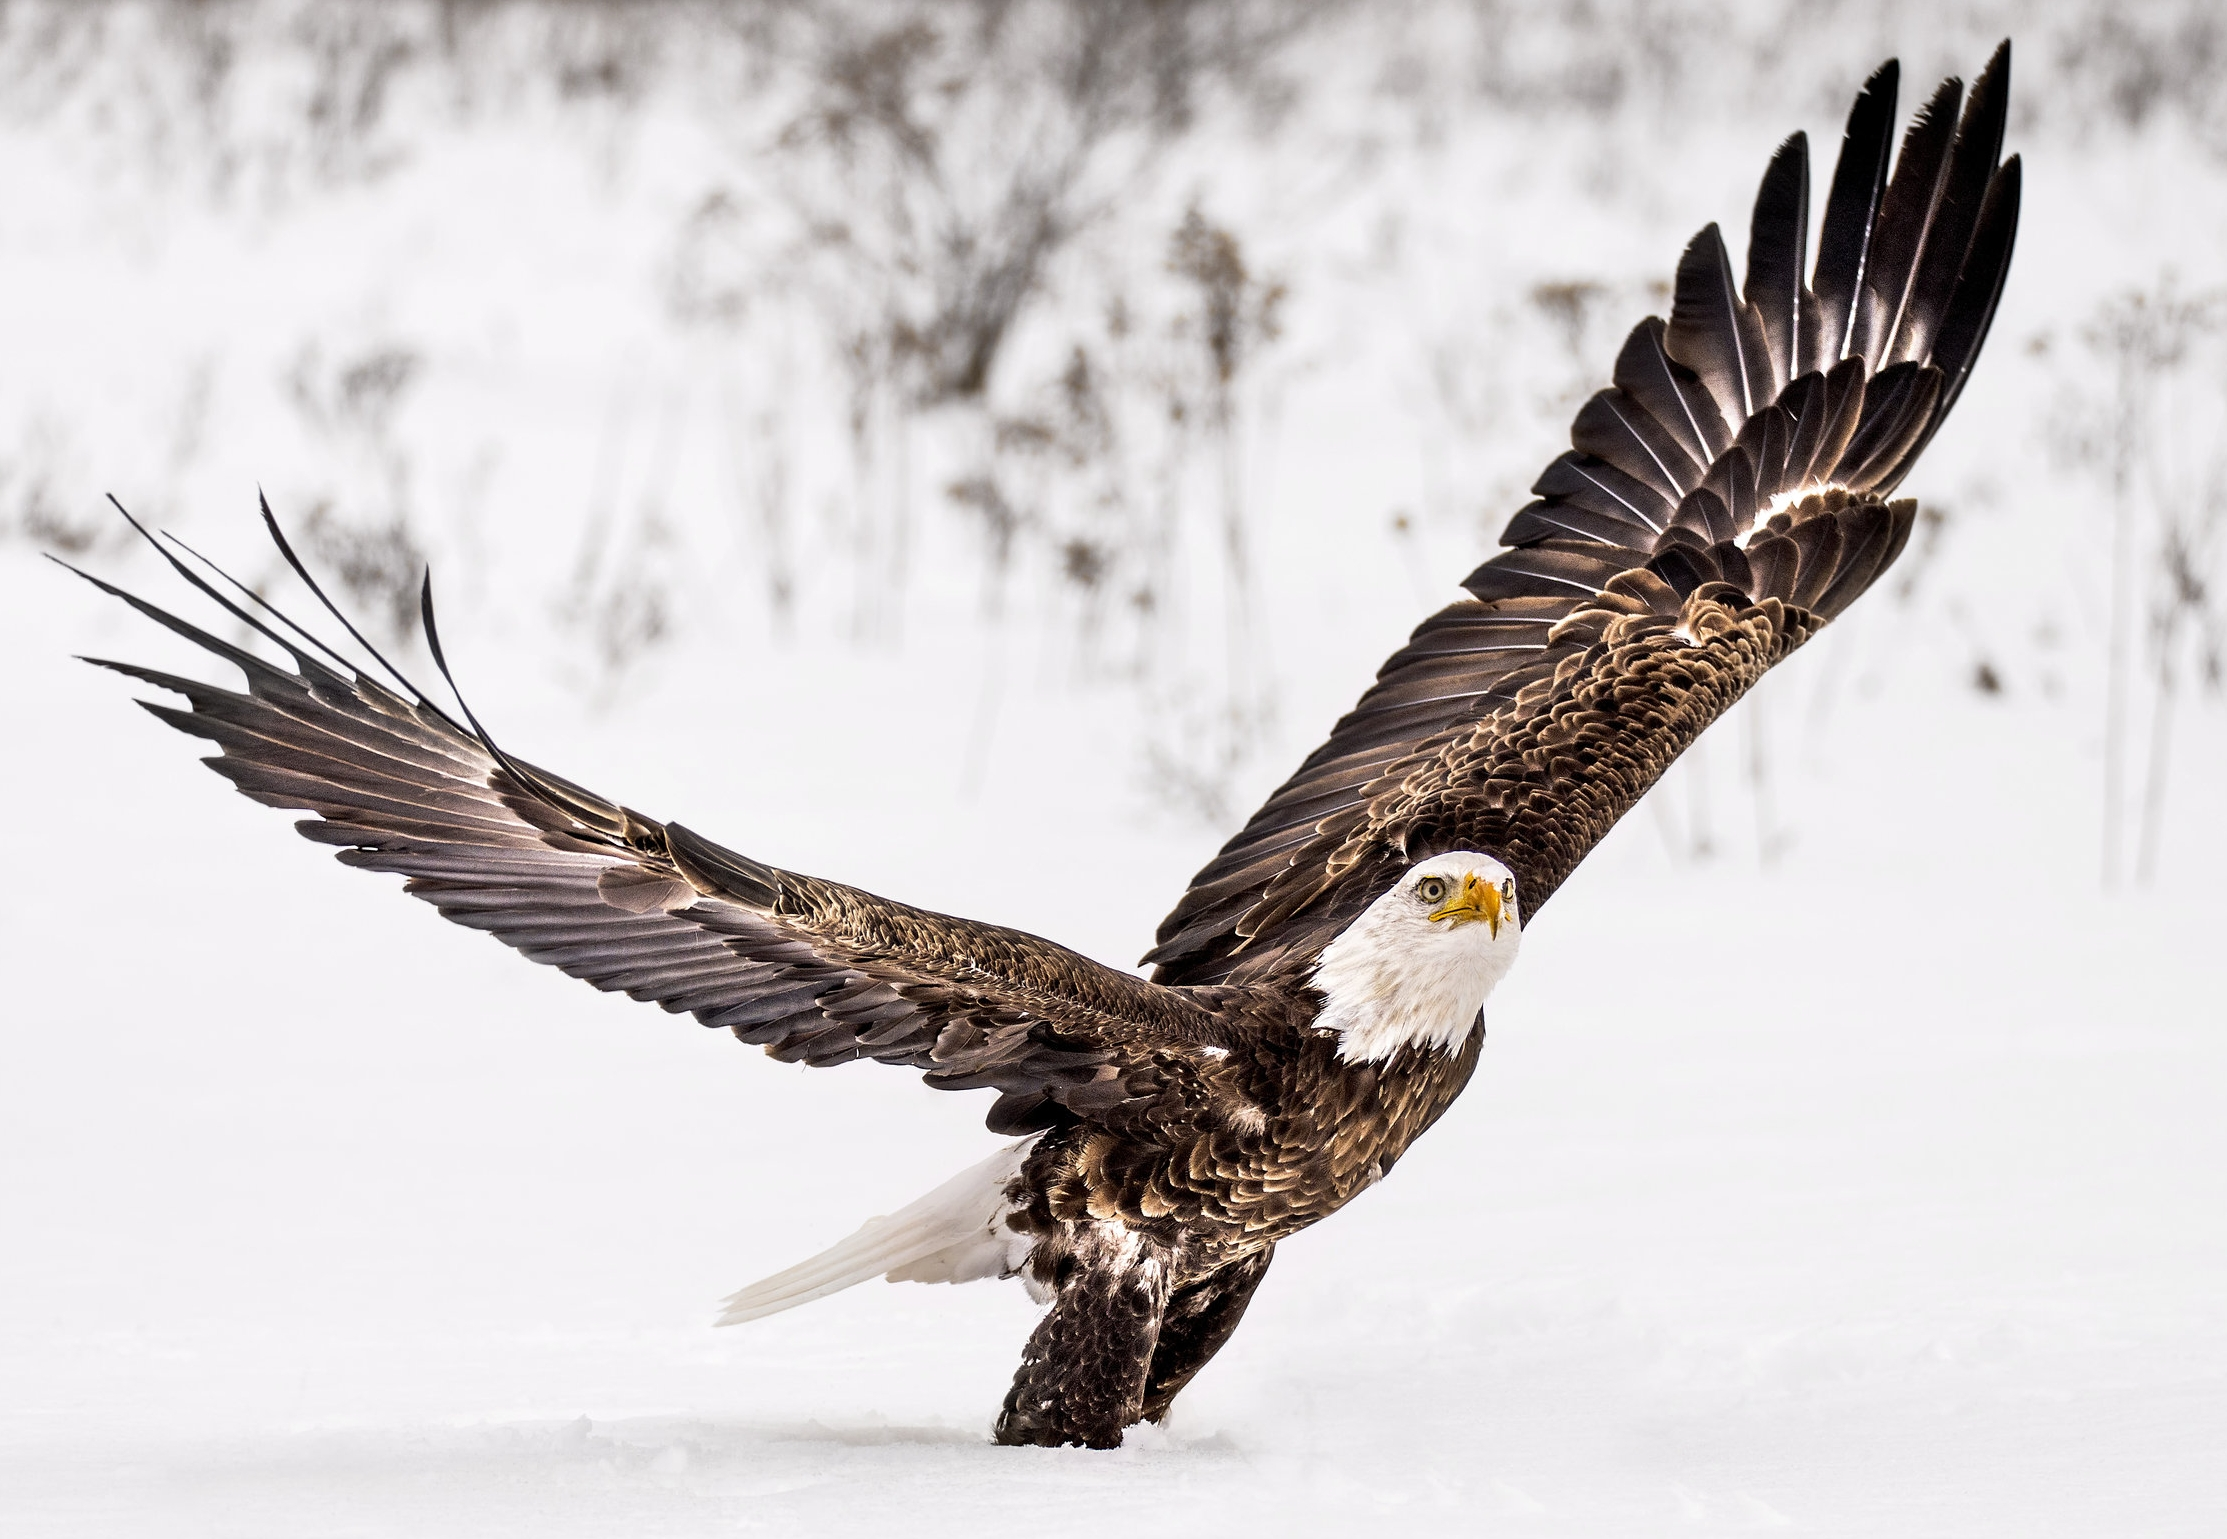 Bald Eagle - ( Flight and Static Photos )The Bald Eagle dwarfs most other raptors, including the Turkey Vulture and Red-tailed Hawk. It has a heavy body, large head, and long, hooked bill. In flight, a Bald Eagle holds its broad wings flat like a board.